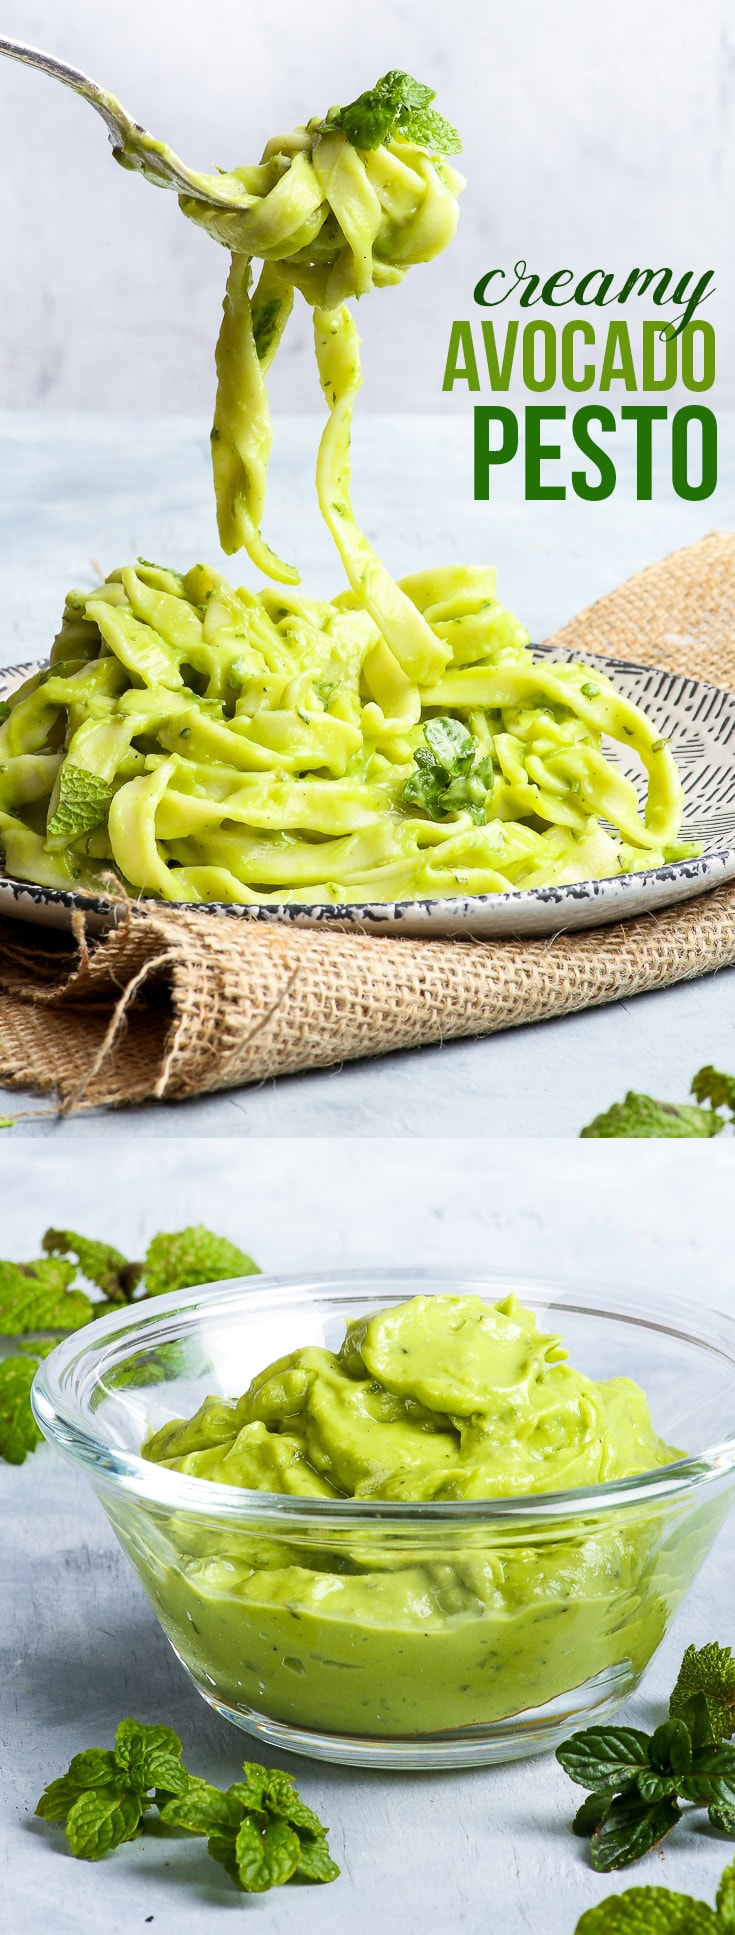 Creamy 4-Ingredient Avocado Pesto {gluten, dairy, egg, nut, soy & refined sugar free, vegan, paleo} - This creamy avocado pesto requires just 4 ingredients (two of which are salt and pepper!) and only 5 minutes to make. In combination with homemade gluten free pasta, it makes the perfect filling, nourishing, quick mid-week meal. It's also perfect in wraps, as a dip, on toast… or on a spoon.